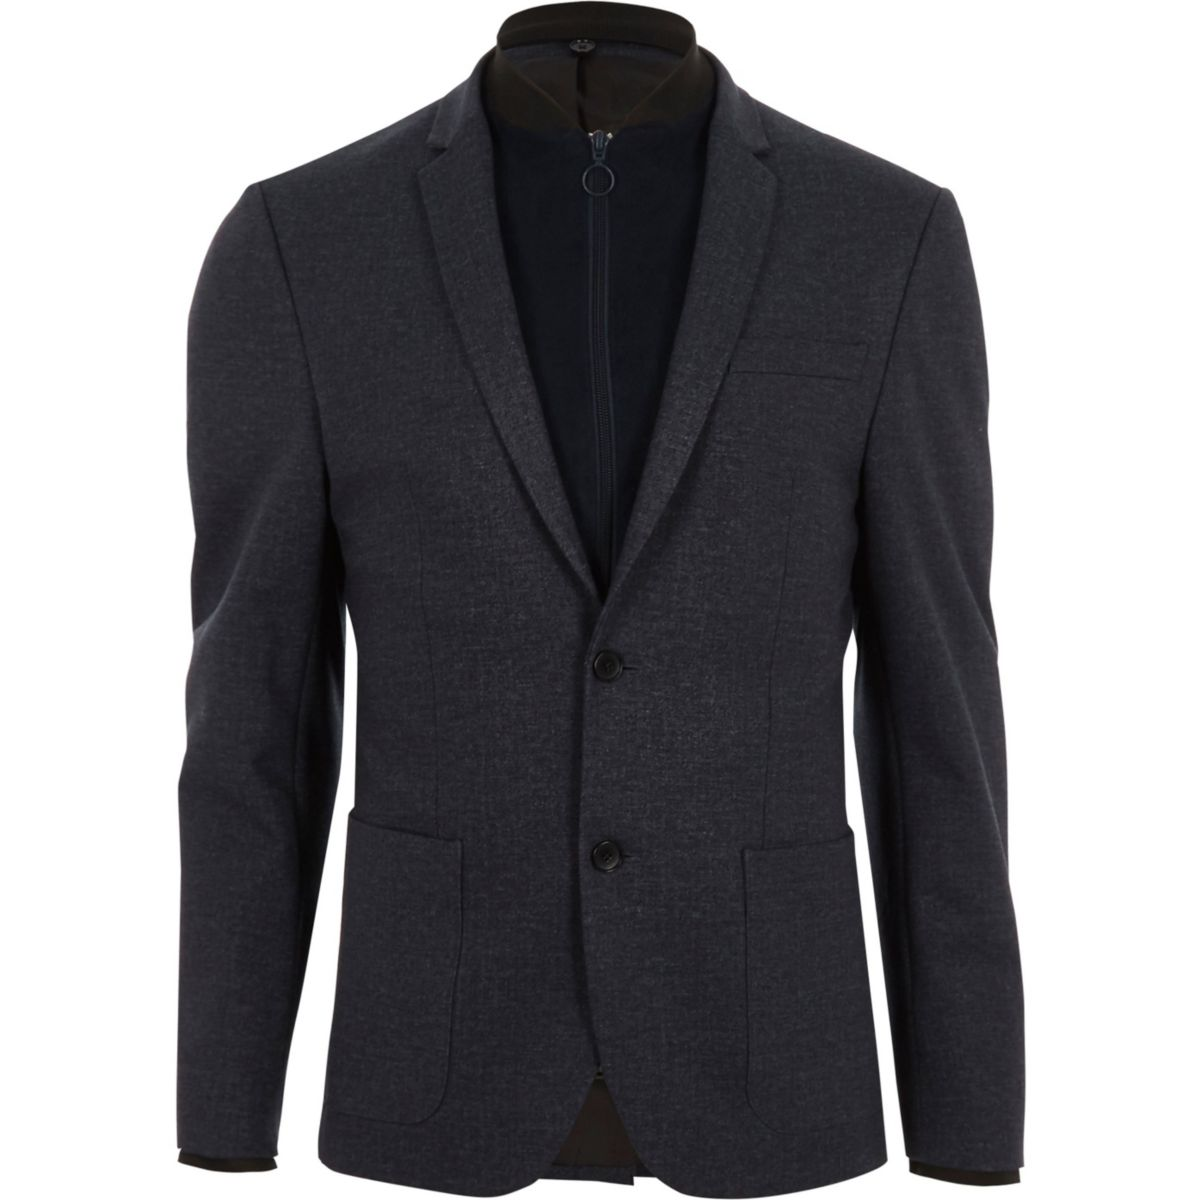 Navy Bomber Jacket Insert Skinny Fit Blazer - Blazers - Sale - Men